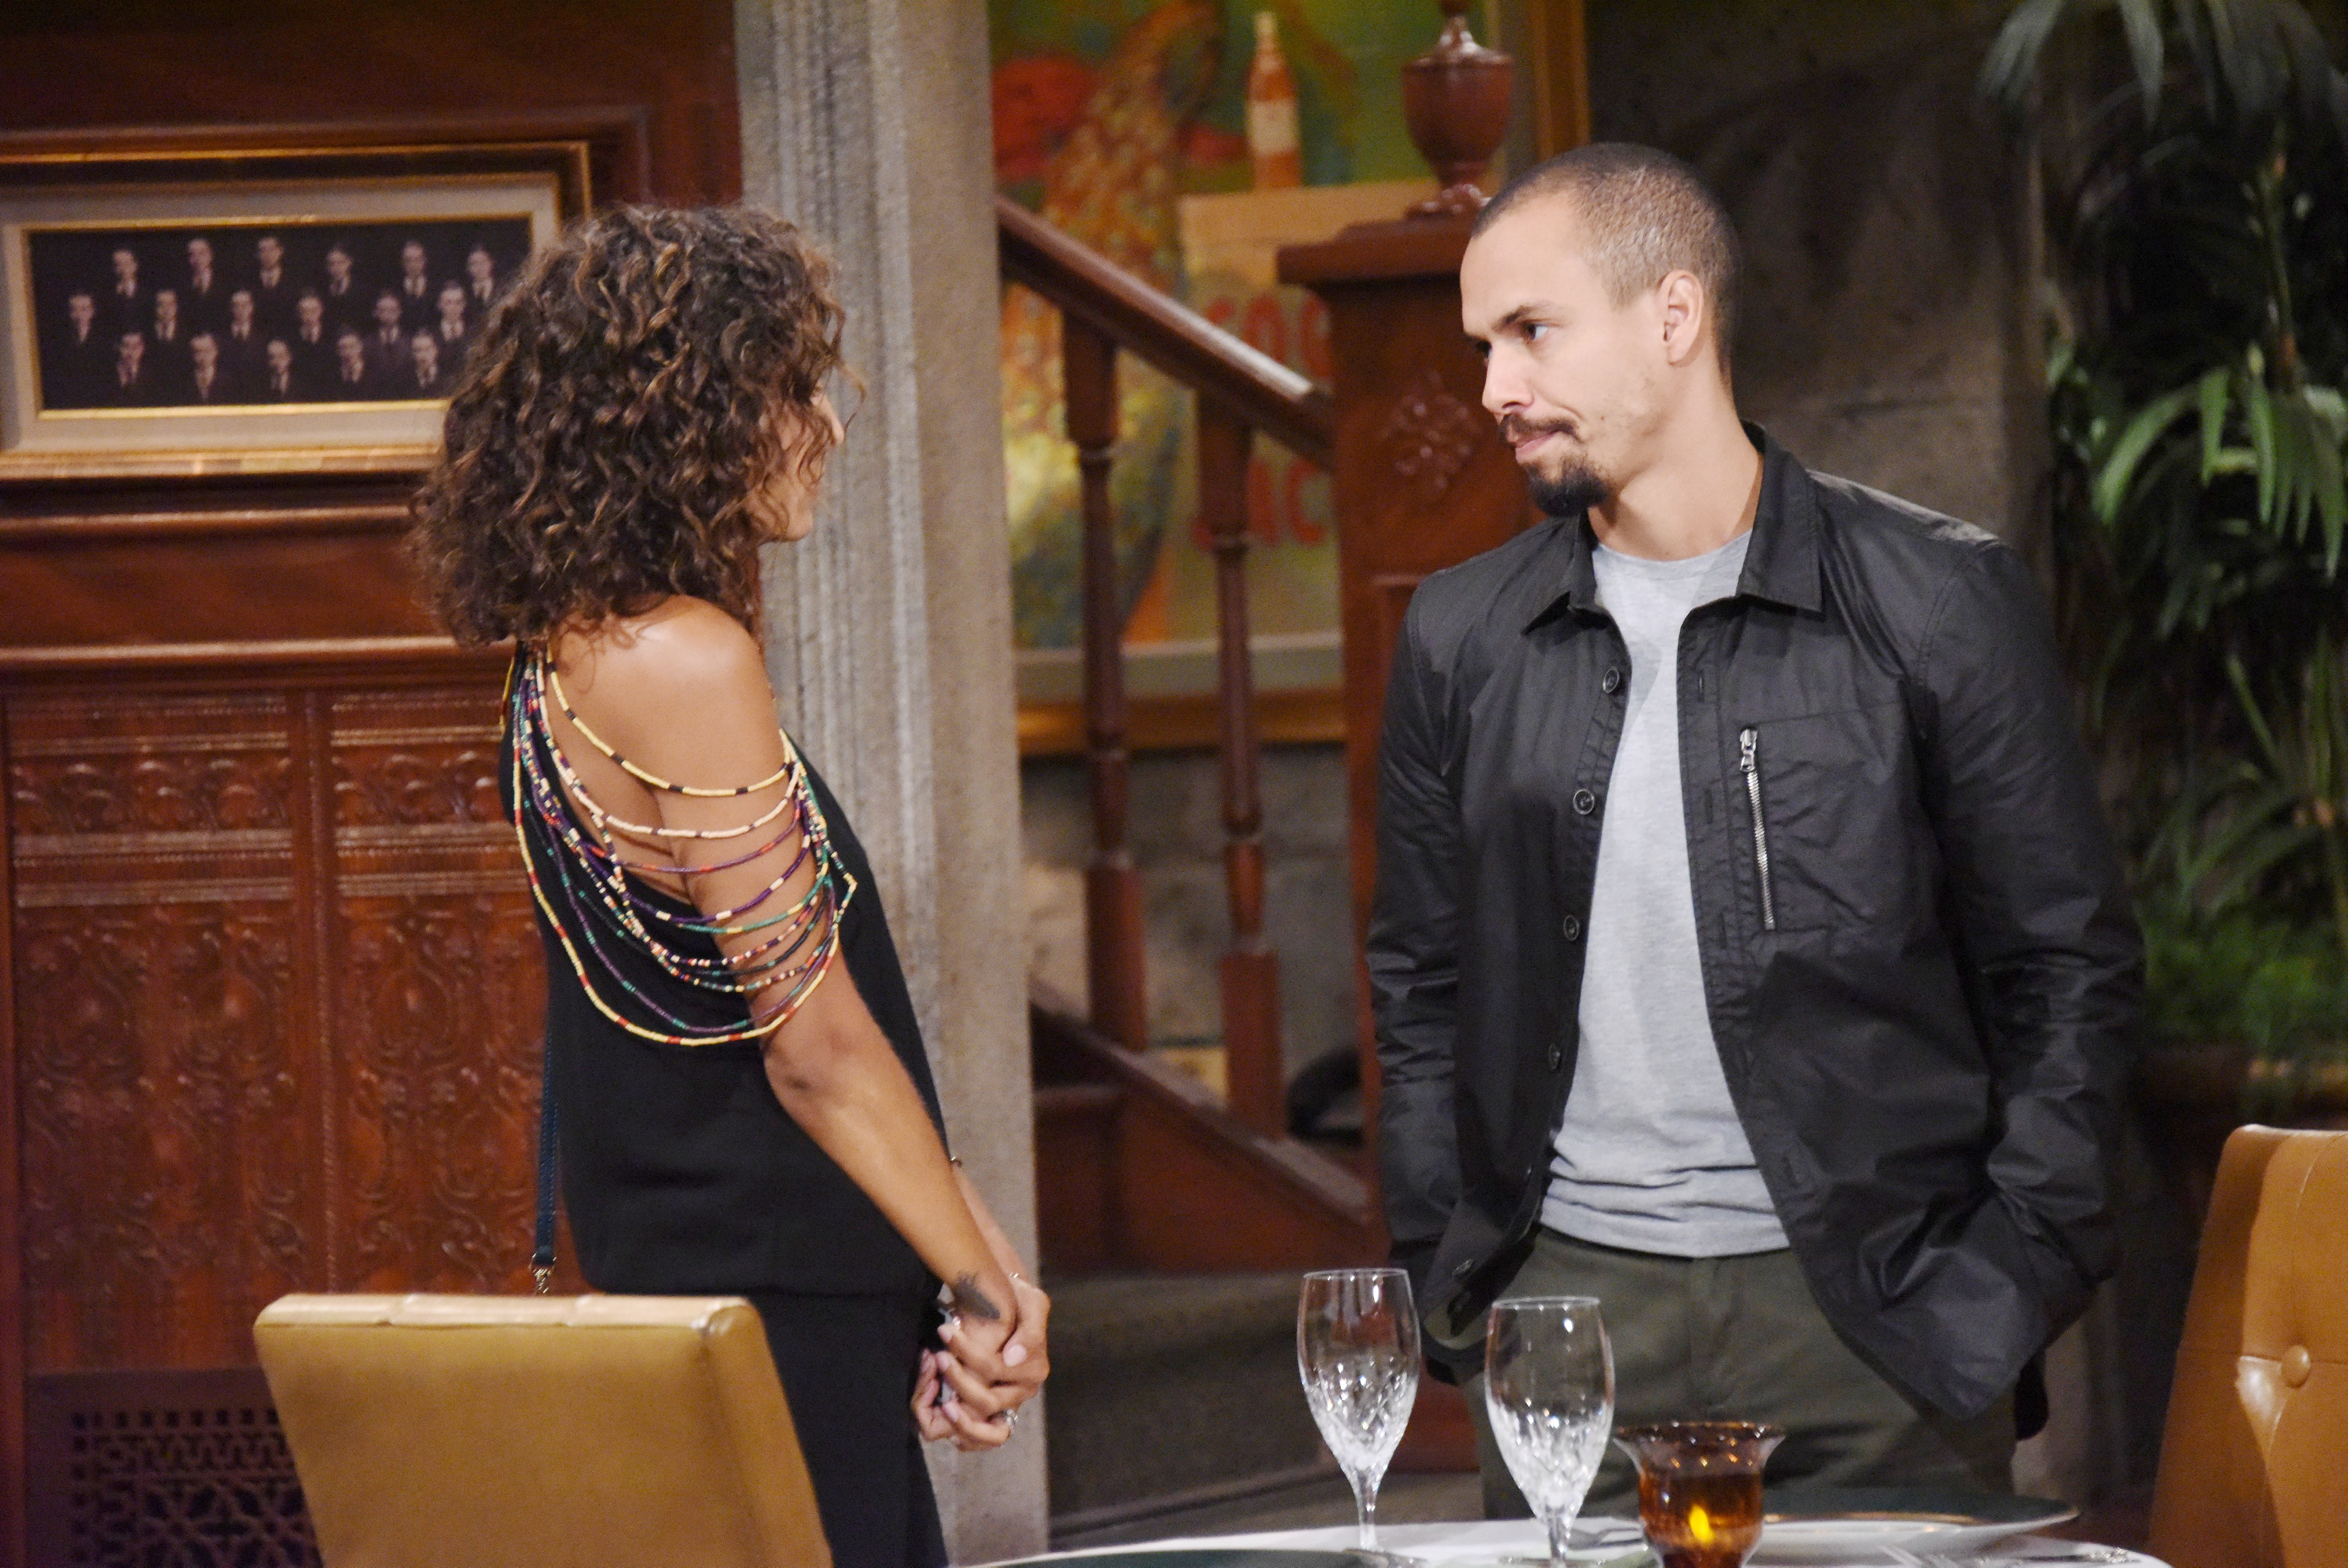 The Young and the Restless: Devon plays hardball.